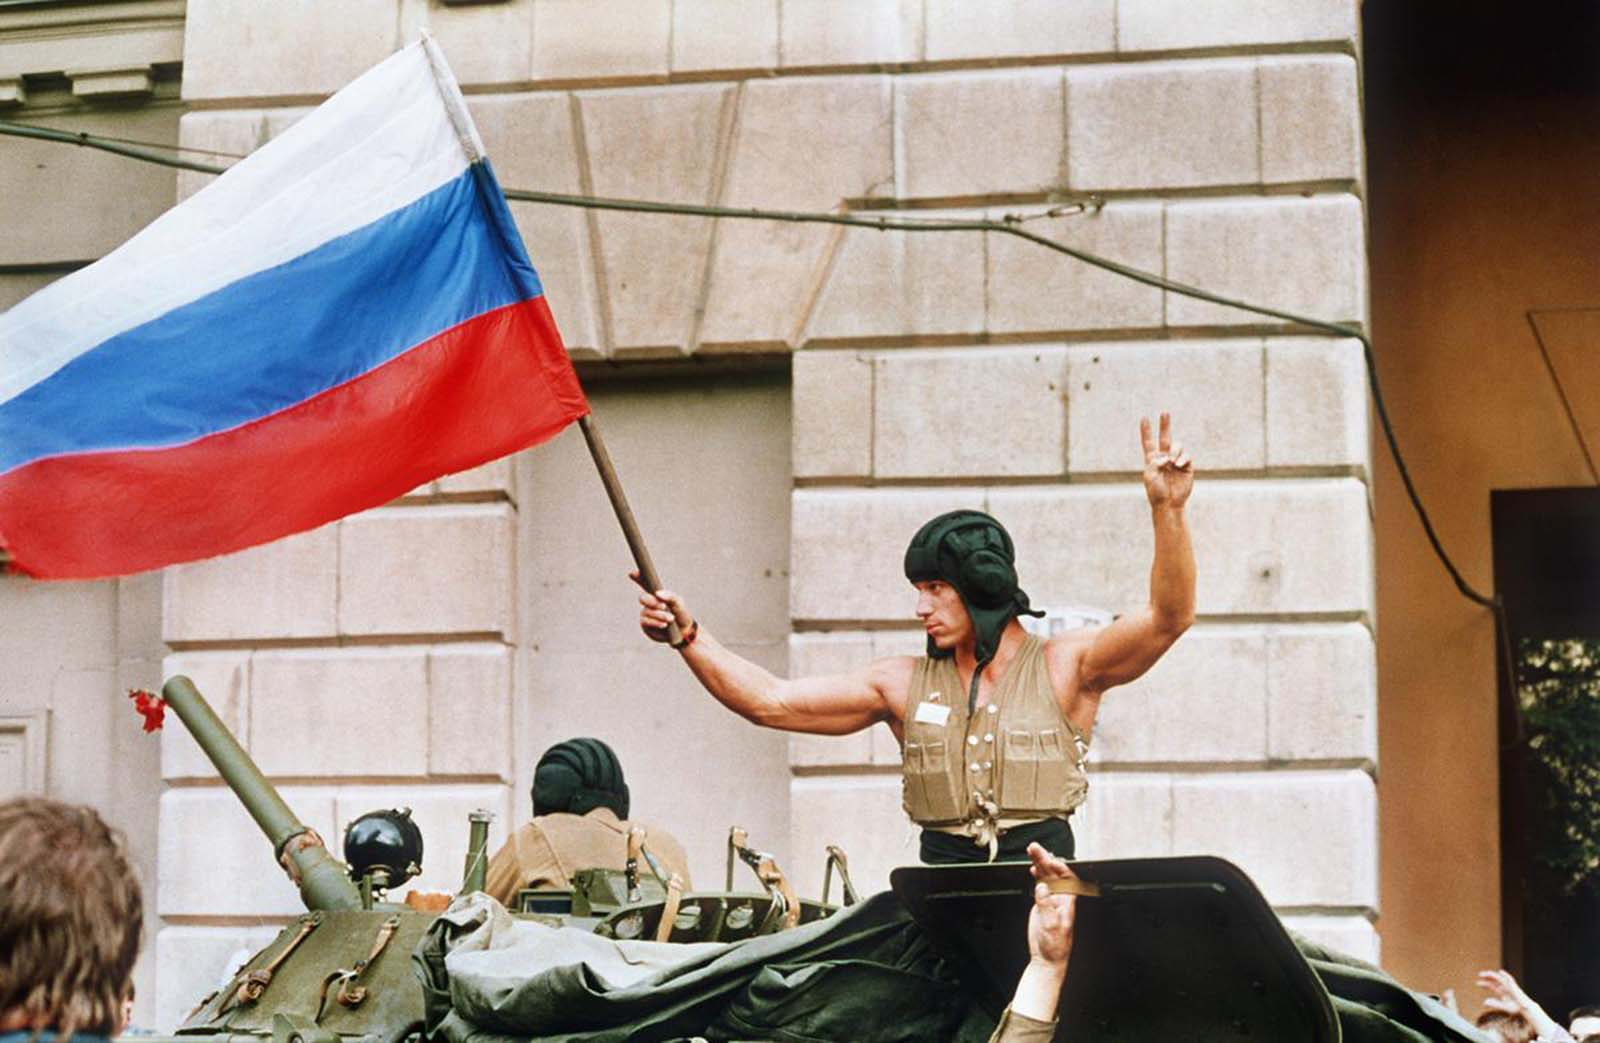 A soldier waves a Russian flag from the top of his tank as armored units leave their positions in Moscow following the collapse of the military coup against president Gorbachev on August 21, 1991. Coup leaders fled the capital and president Gorbachev was rumored to be returning soon.